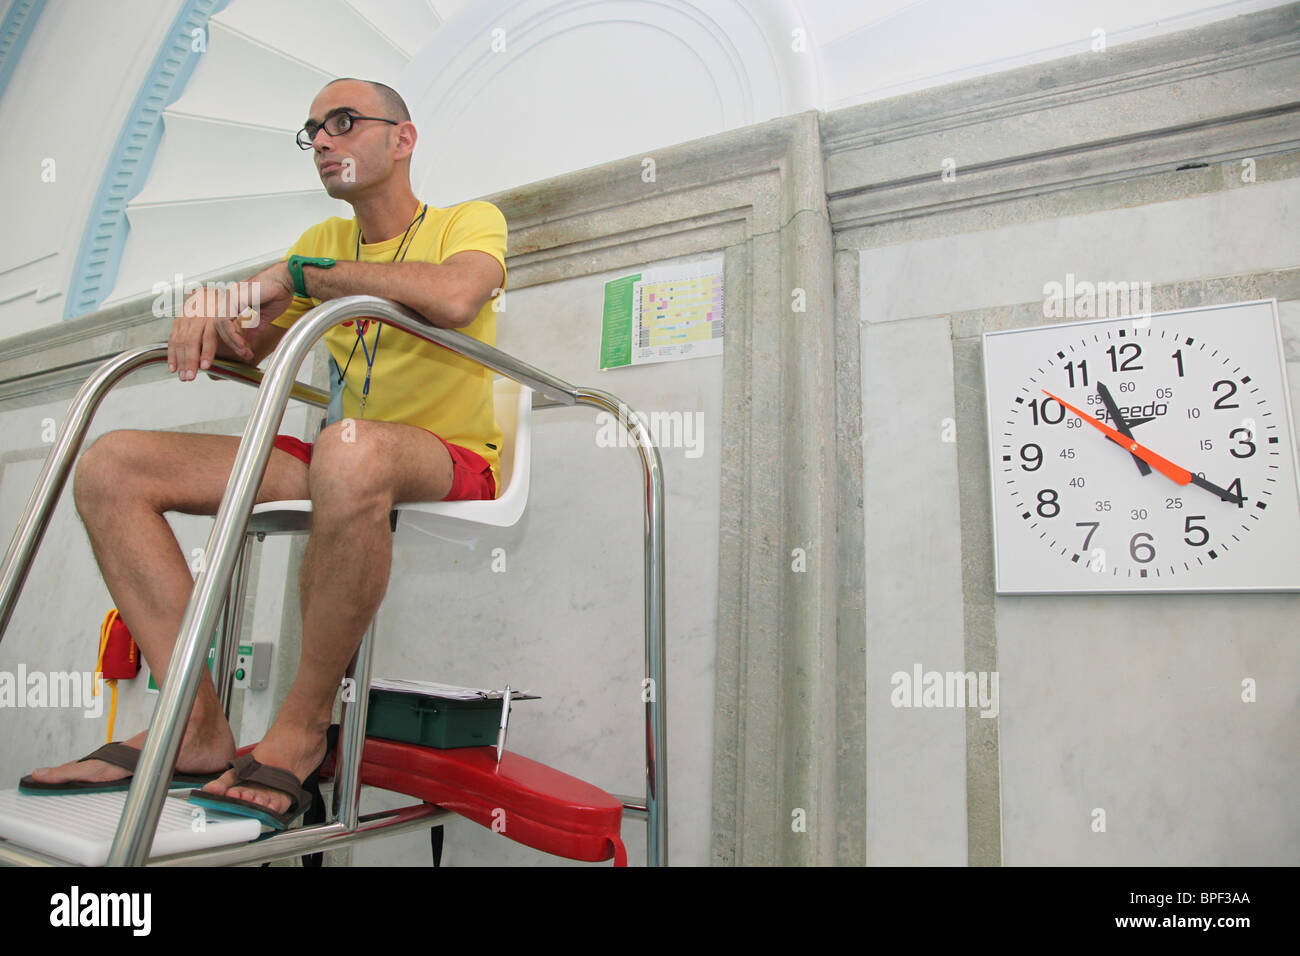 Lifeguard on duty in an indoor swimming pool - Stock Image